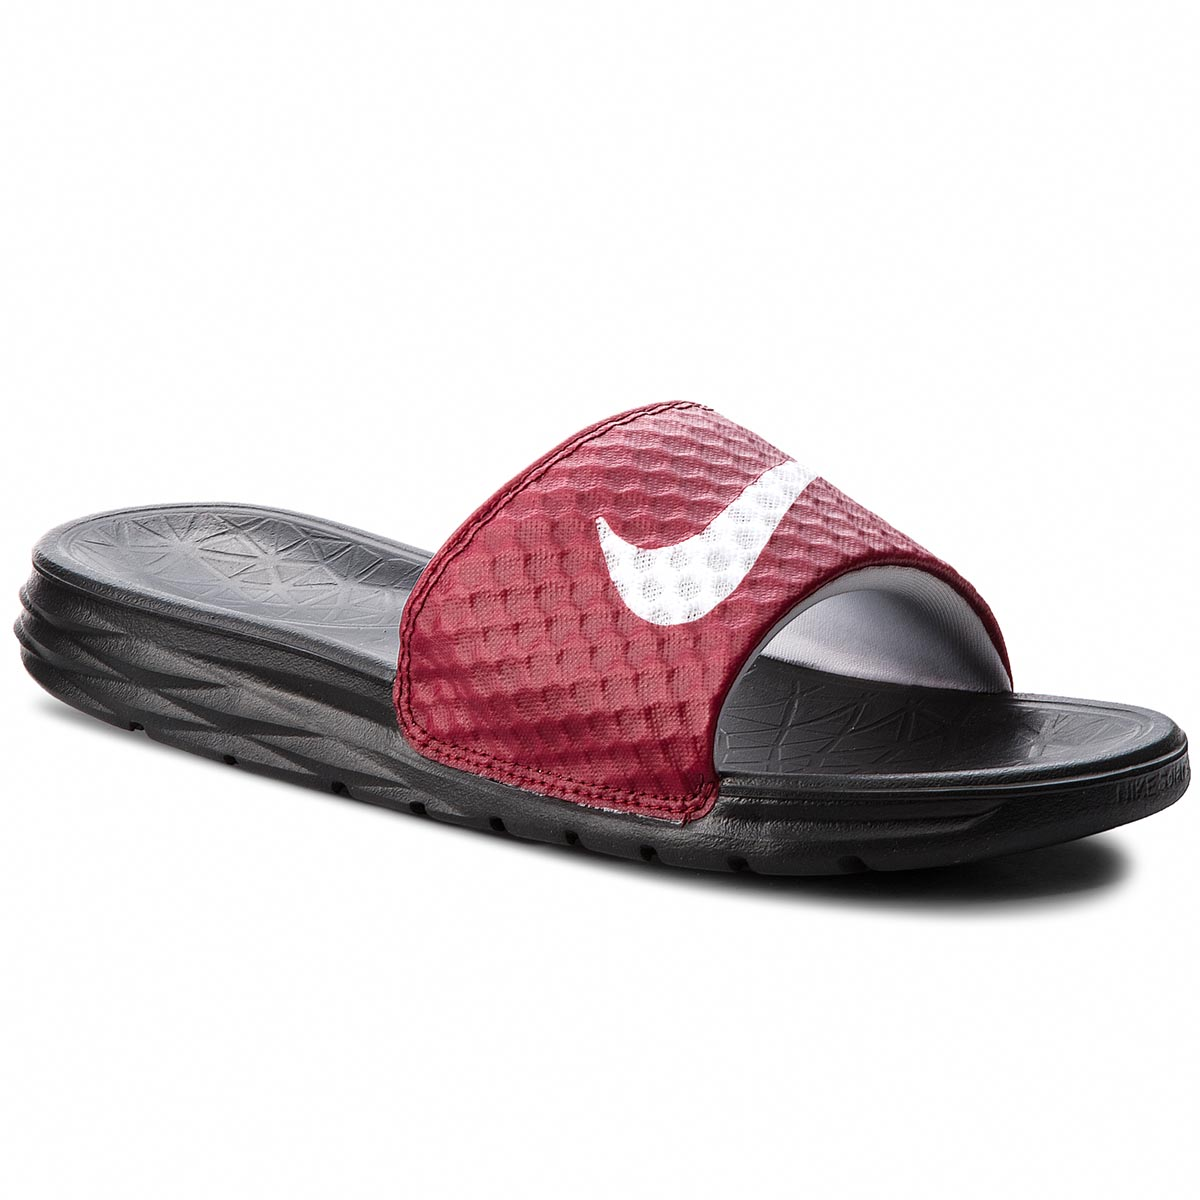 Șlapi NIKE - Benassi Solarsoft 705474 602 Team Red/White/Black